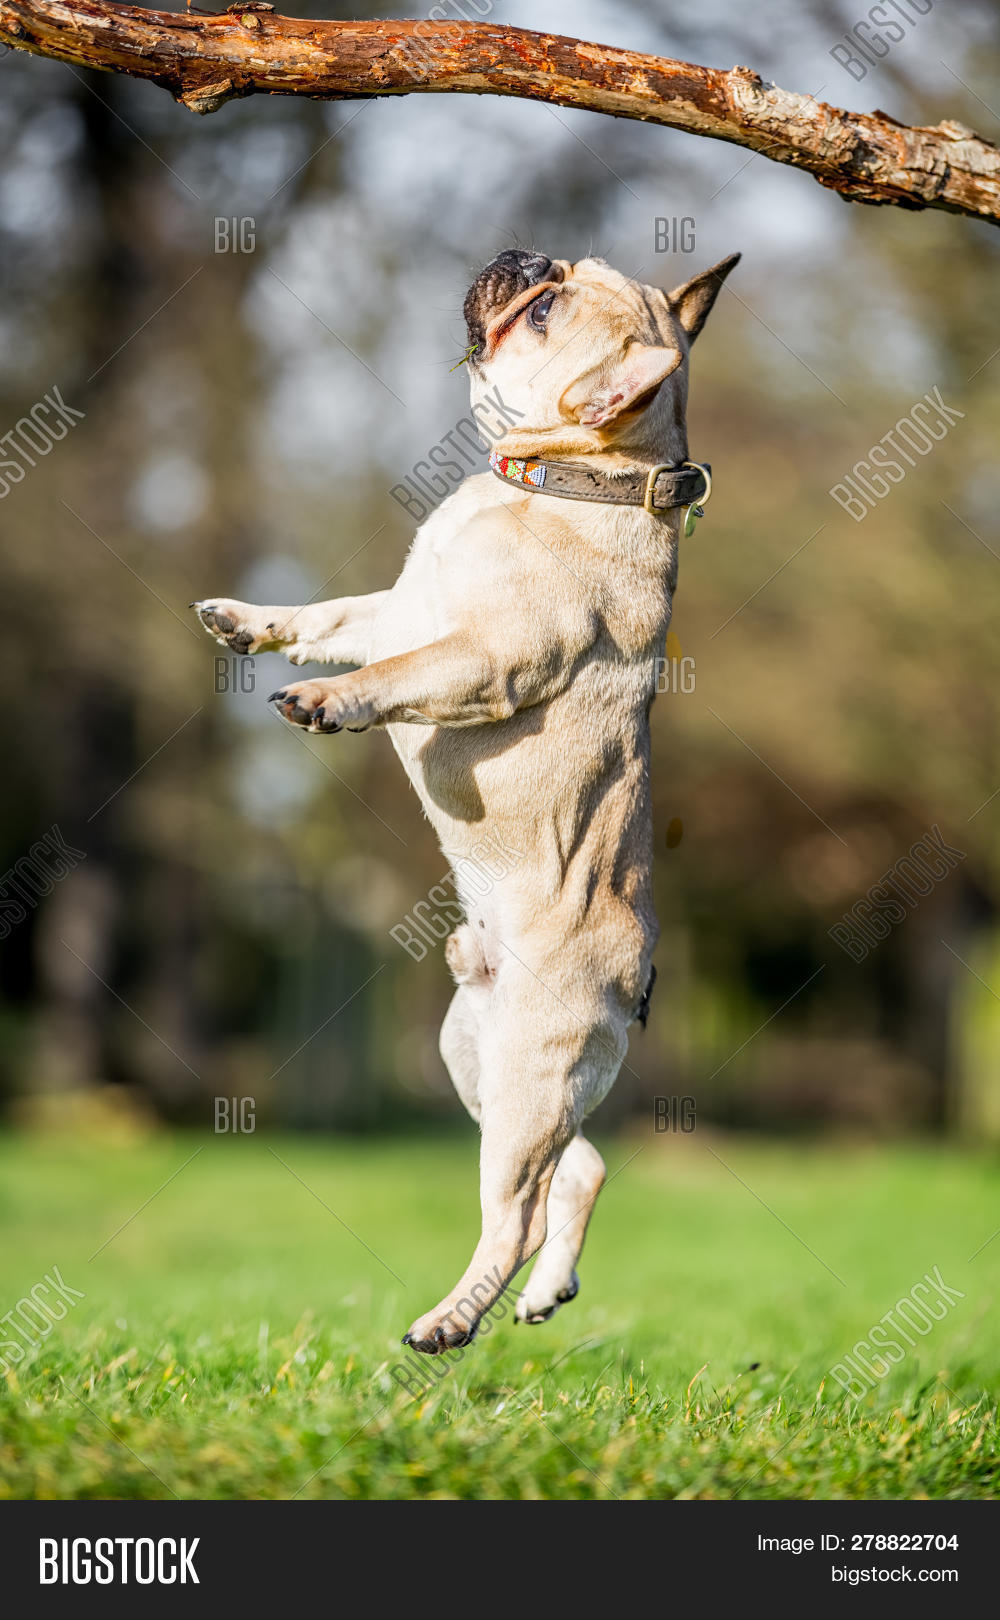 A Sandy French Bulldog Jumping Towards A Large Branch Over A